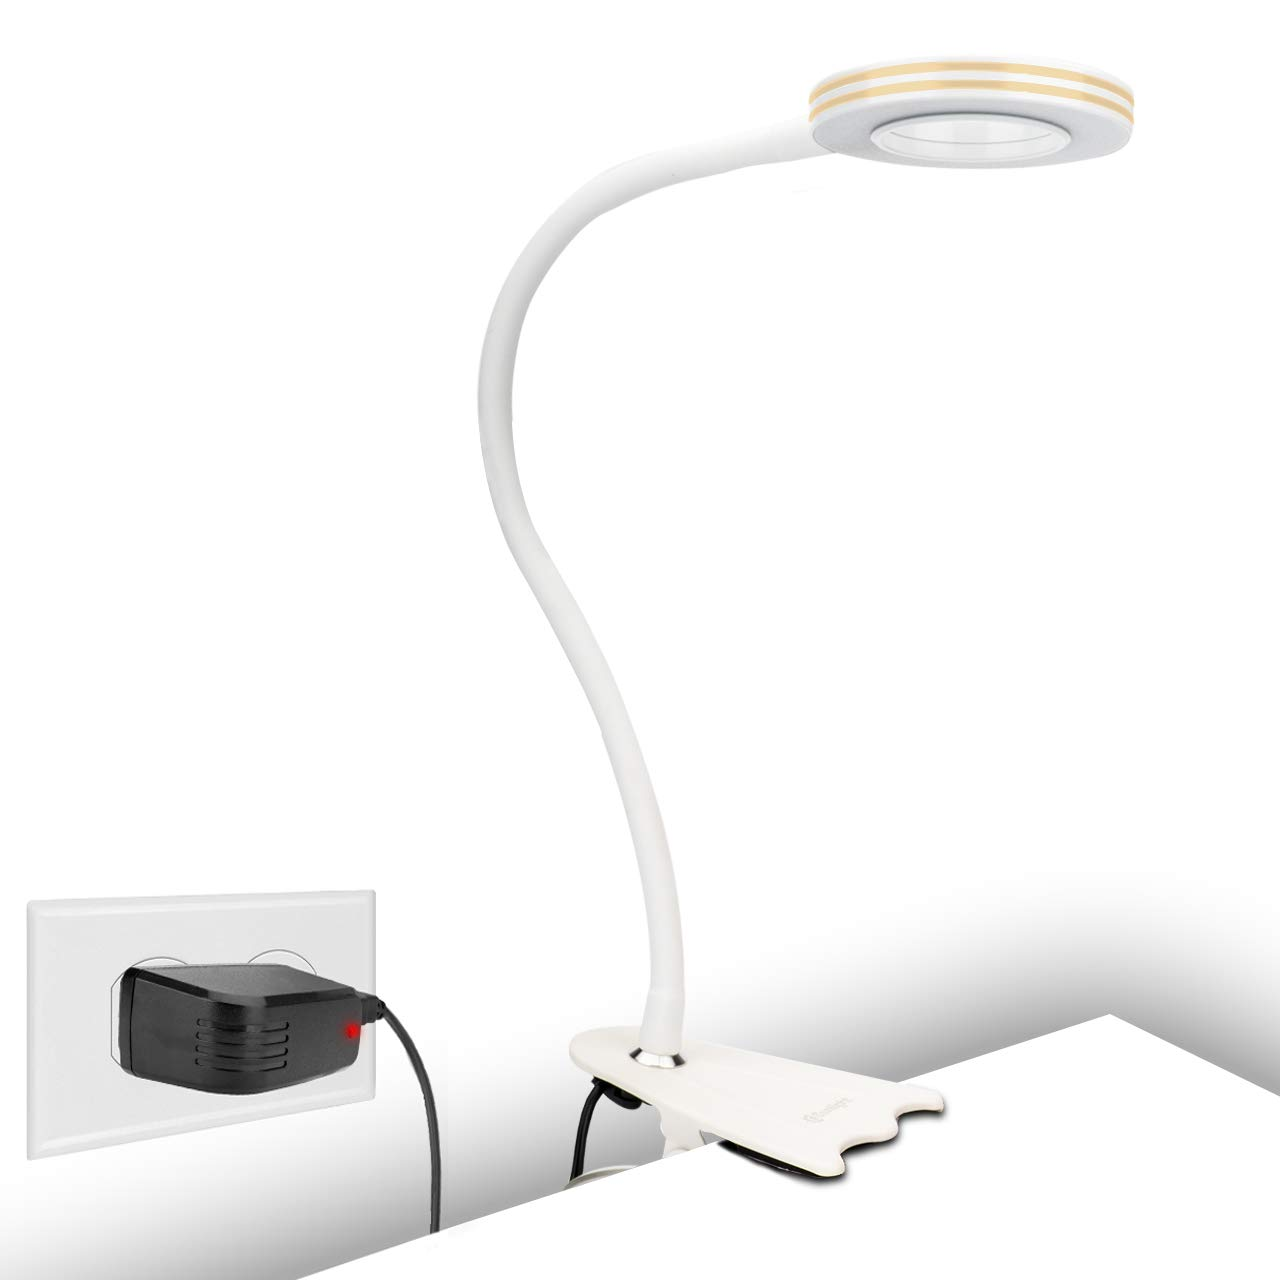 CeSunlight Clip Light, 8W Clamp Bed Desk Lamp, Bedside Led Reading Lamp for Headboard, Warm Daylight White Light 3 Colors, Eye-Care 10 Dimmable Illumination Modes White